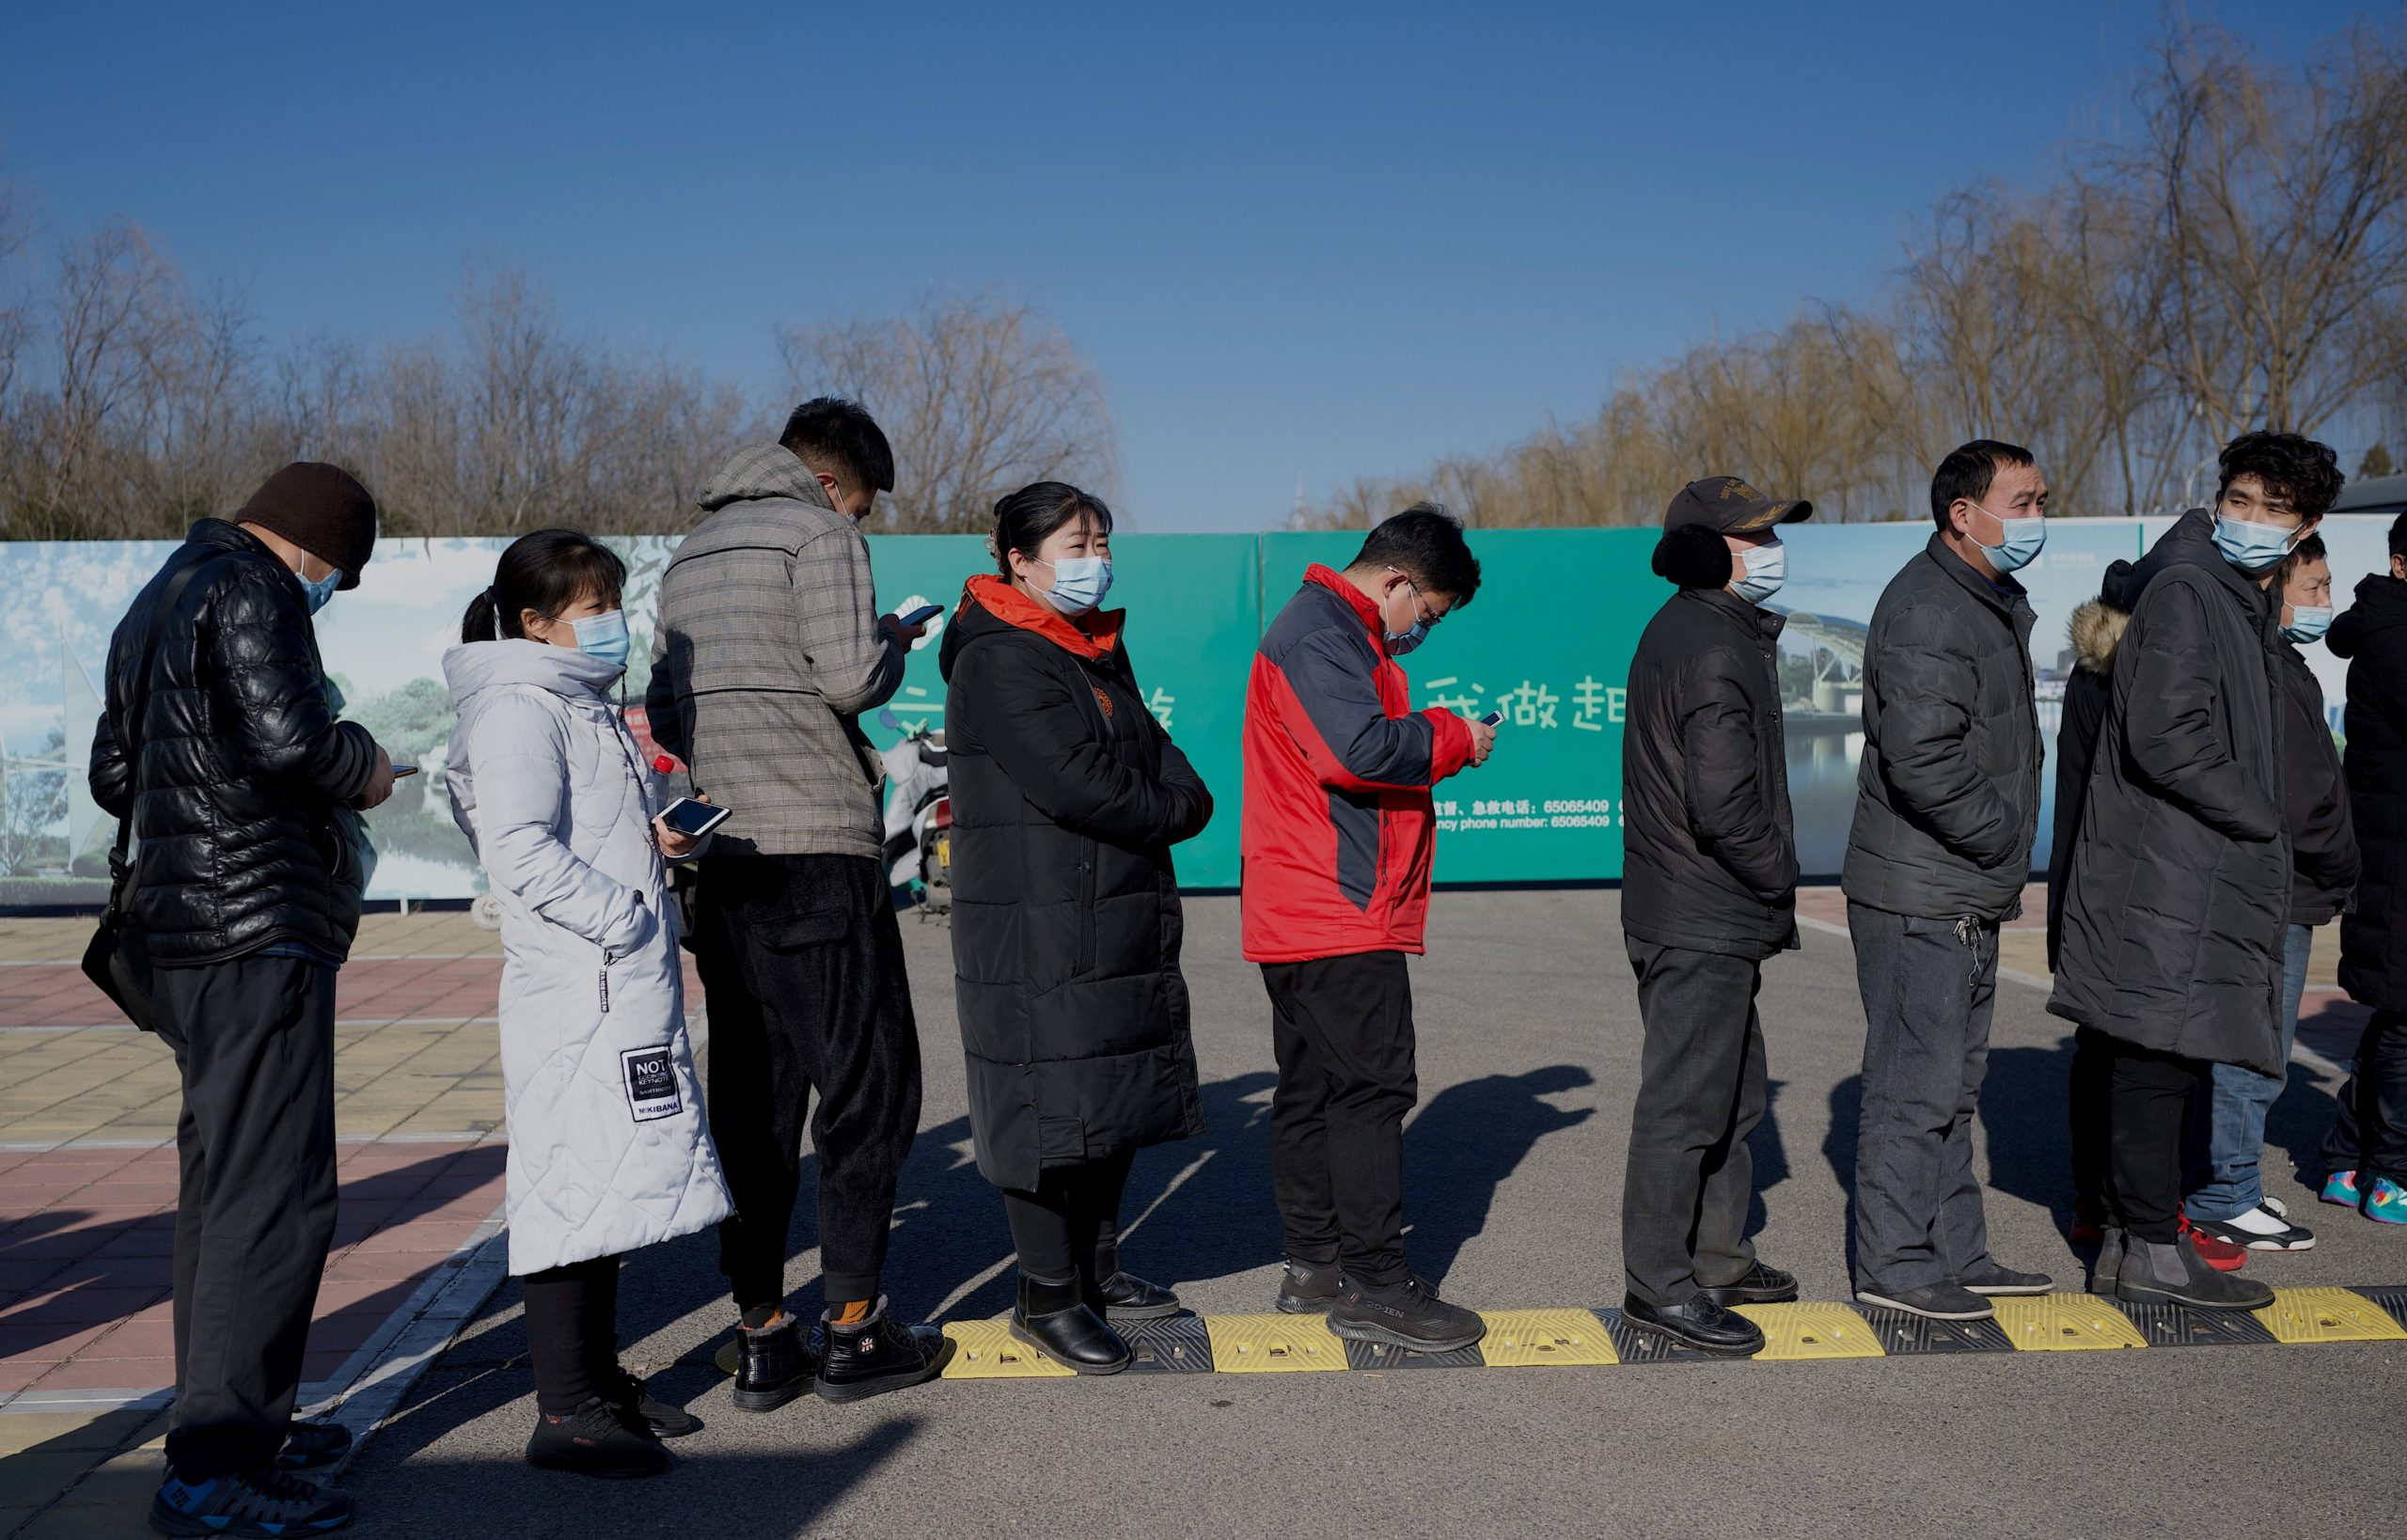 People wait to board shuttle buses to a COVID-19 coronavirus vaccine center in Beijing on January 5, 2021, as China races to innoculate millions before the Chinese New Year Mass travel season in February. (Photo by Noel Celis / AFP) (Photo by NOEL CELIS/AFP via Getty Images)